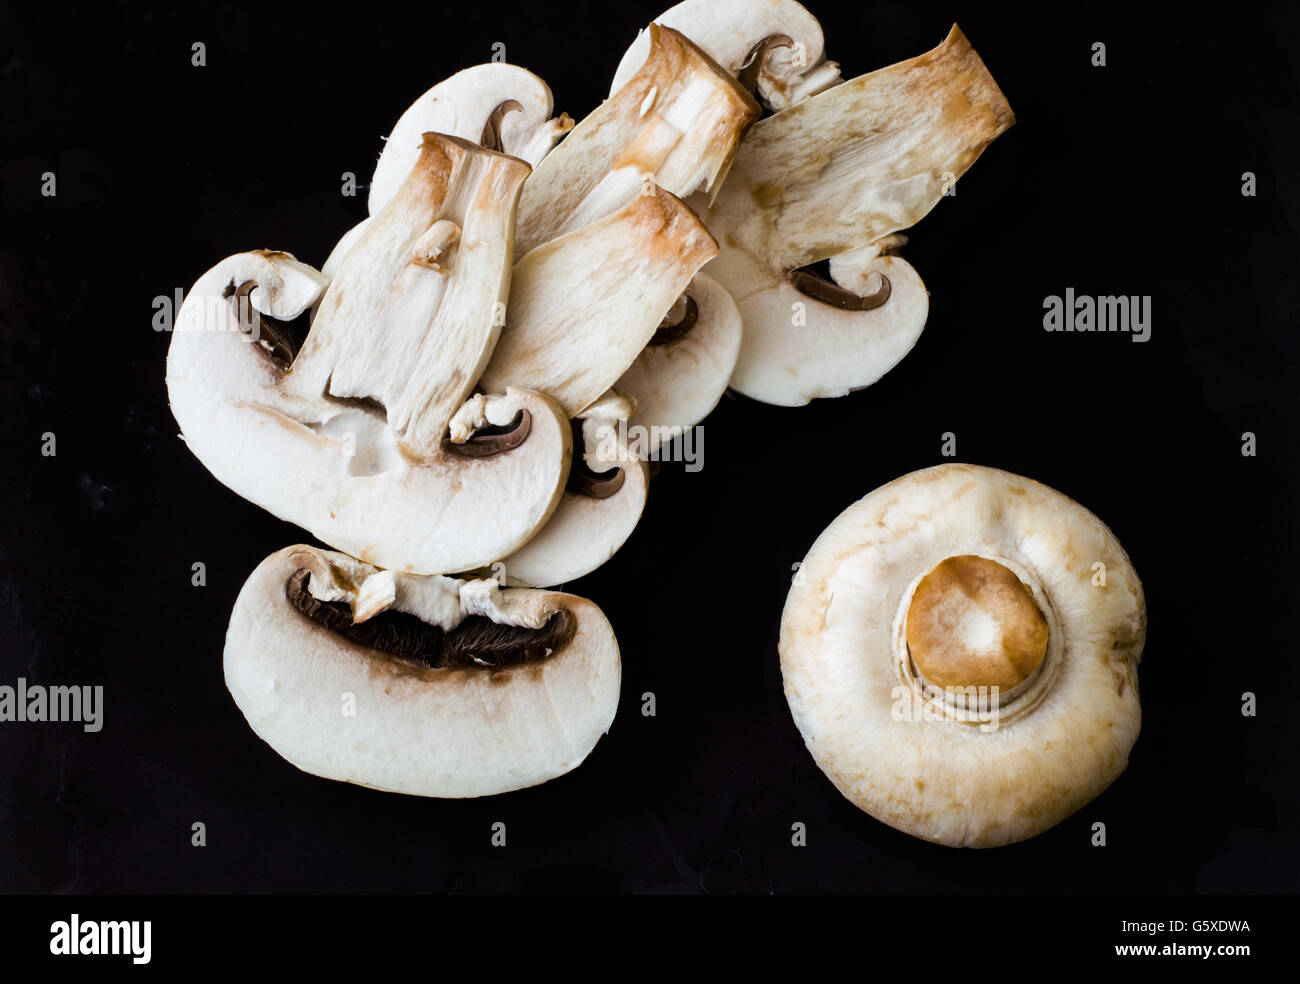 Top View of Sliced Fresh Mushrooms Before Cooking Stock Photo